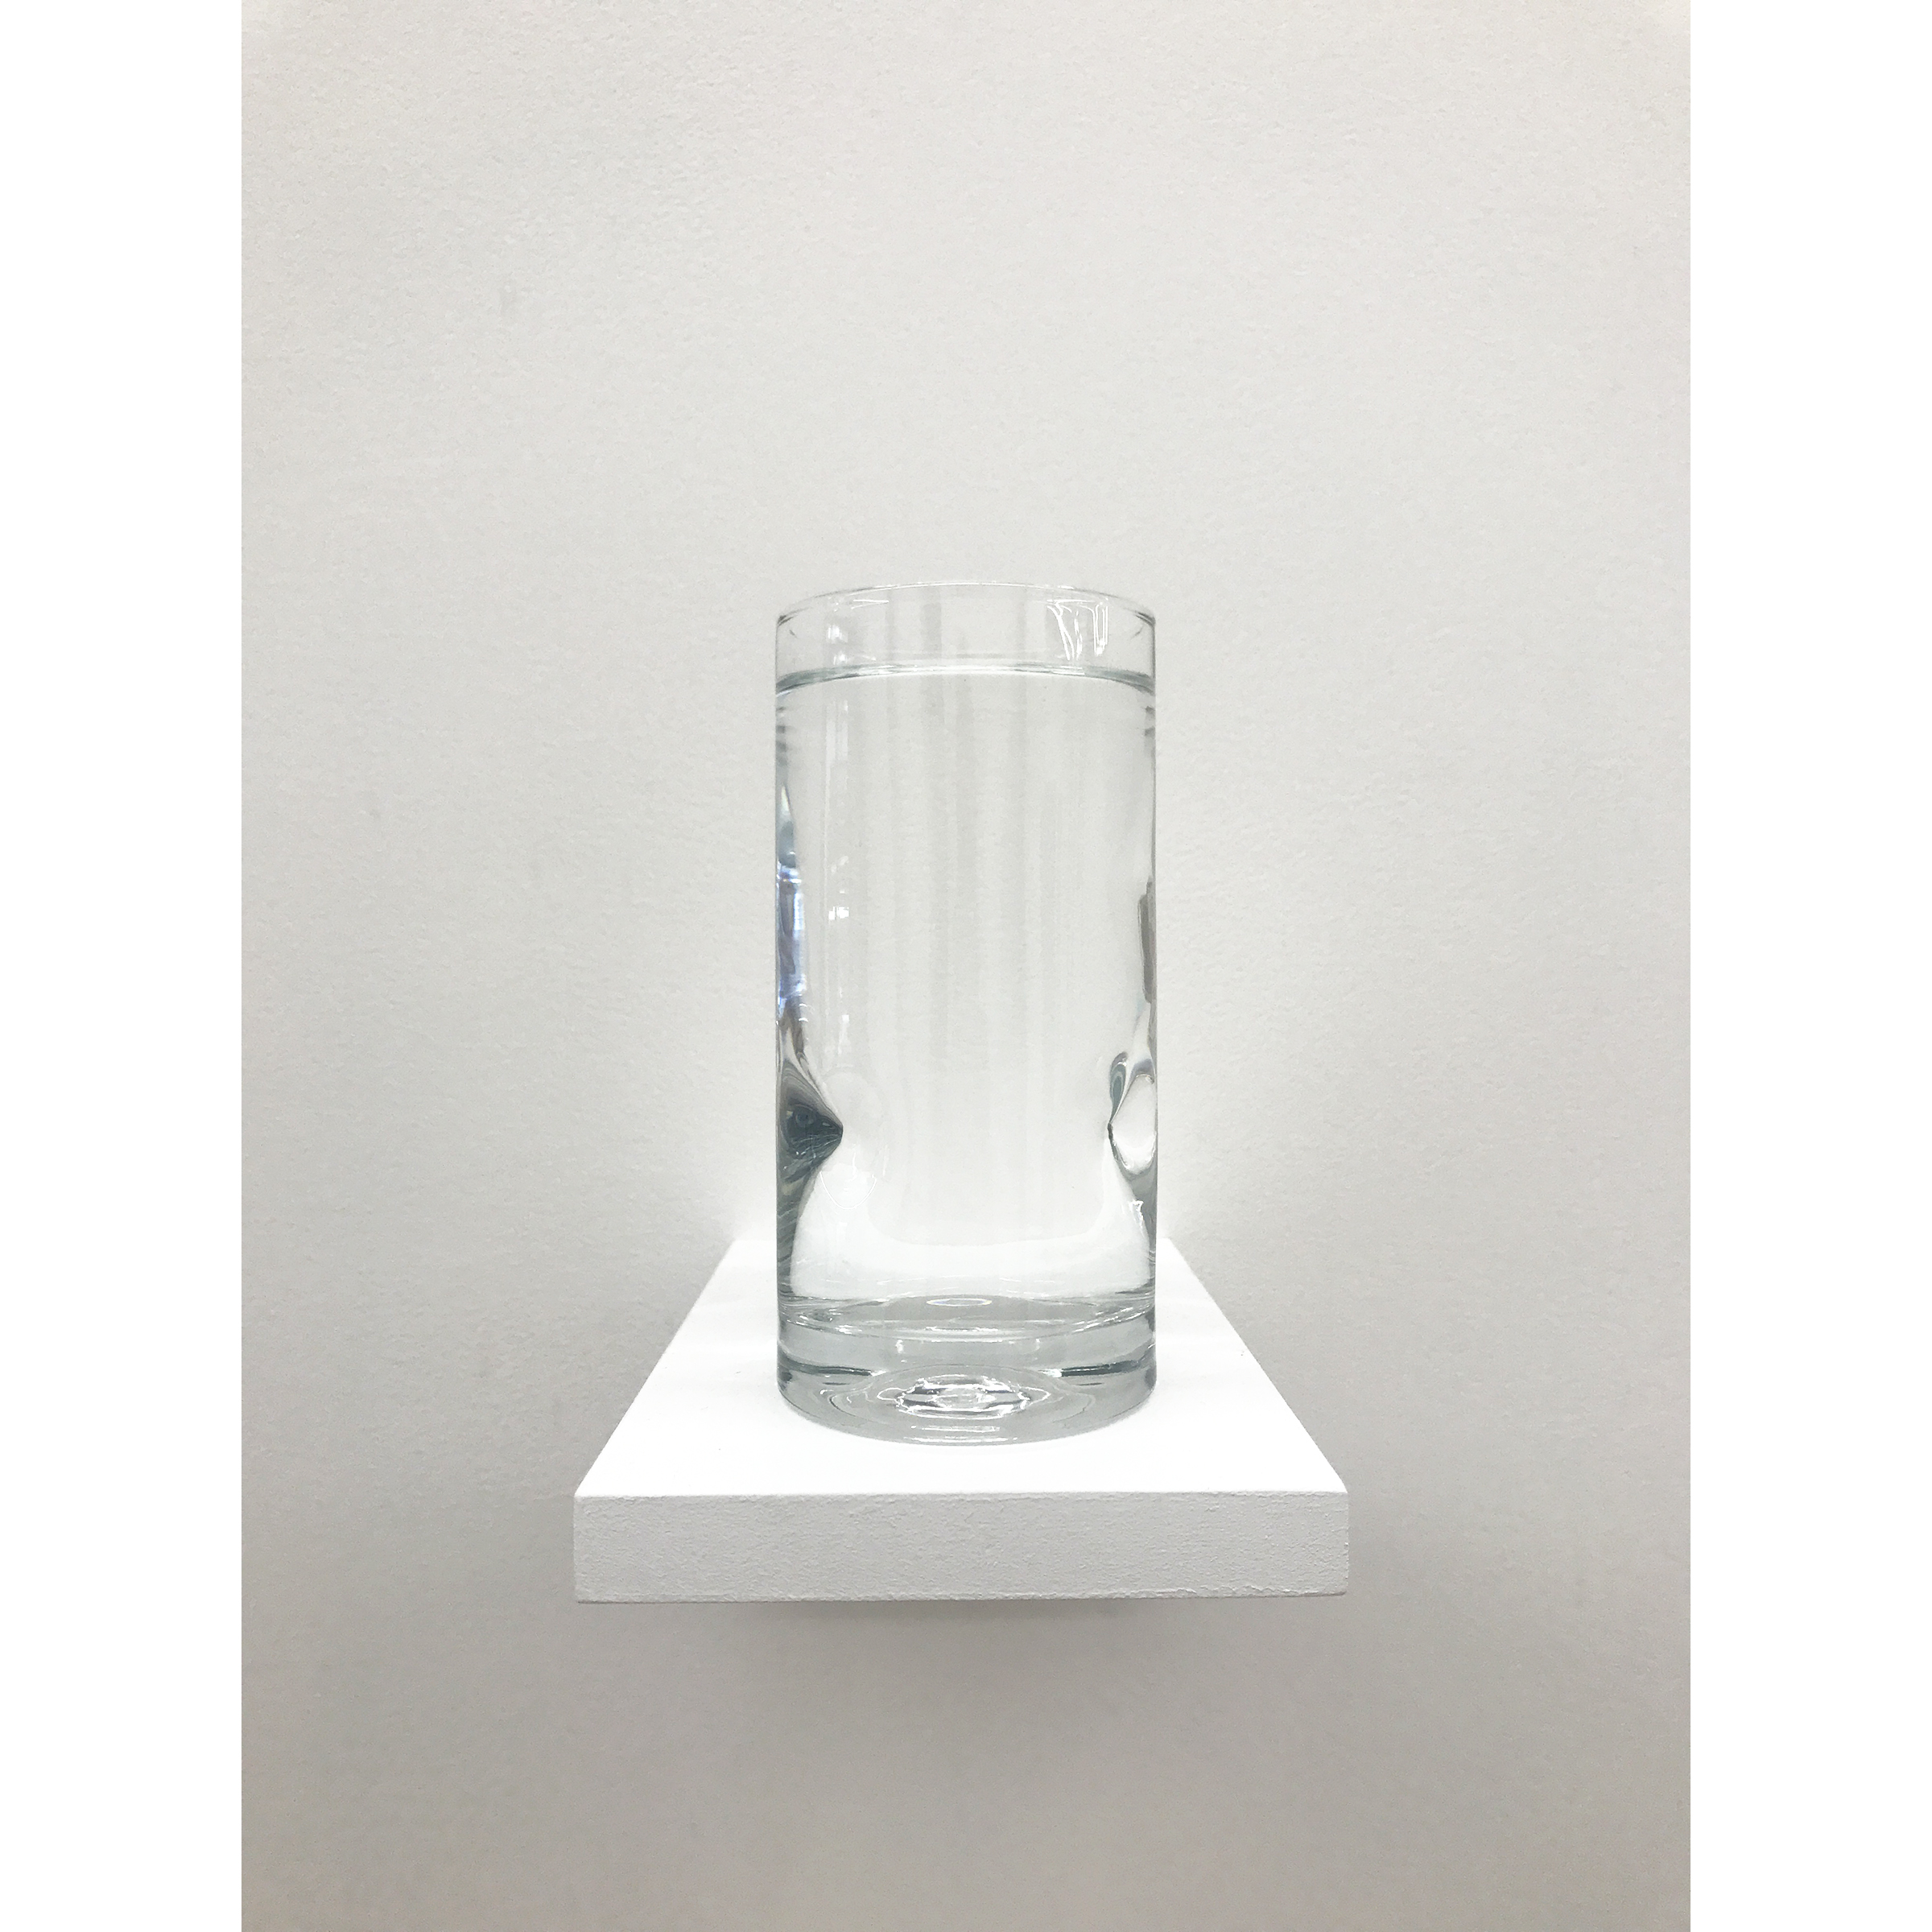 Pope.L, Well (elh version) , 2017, wood, glass, water, dimensions variable